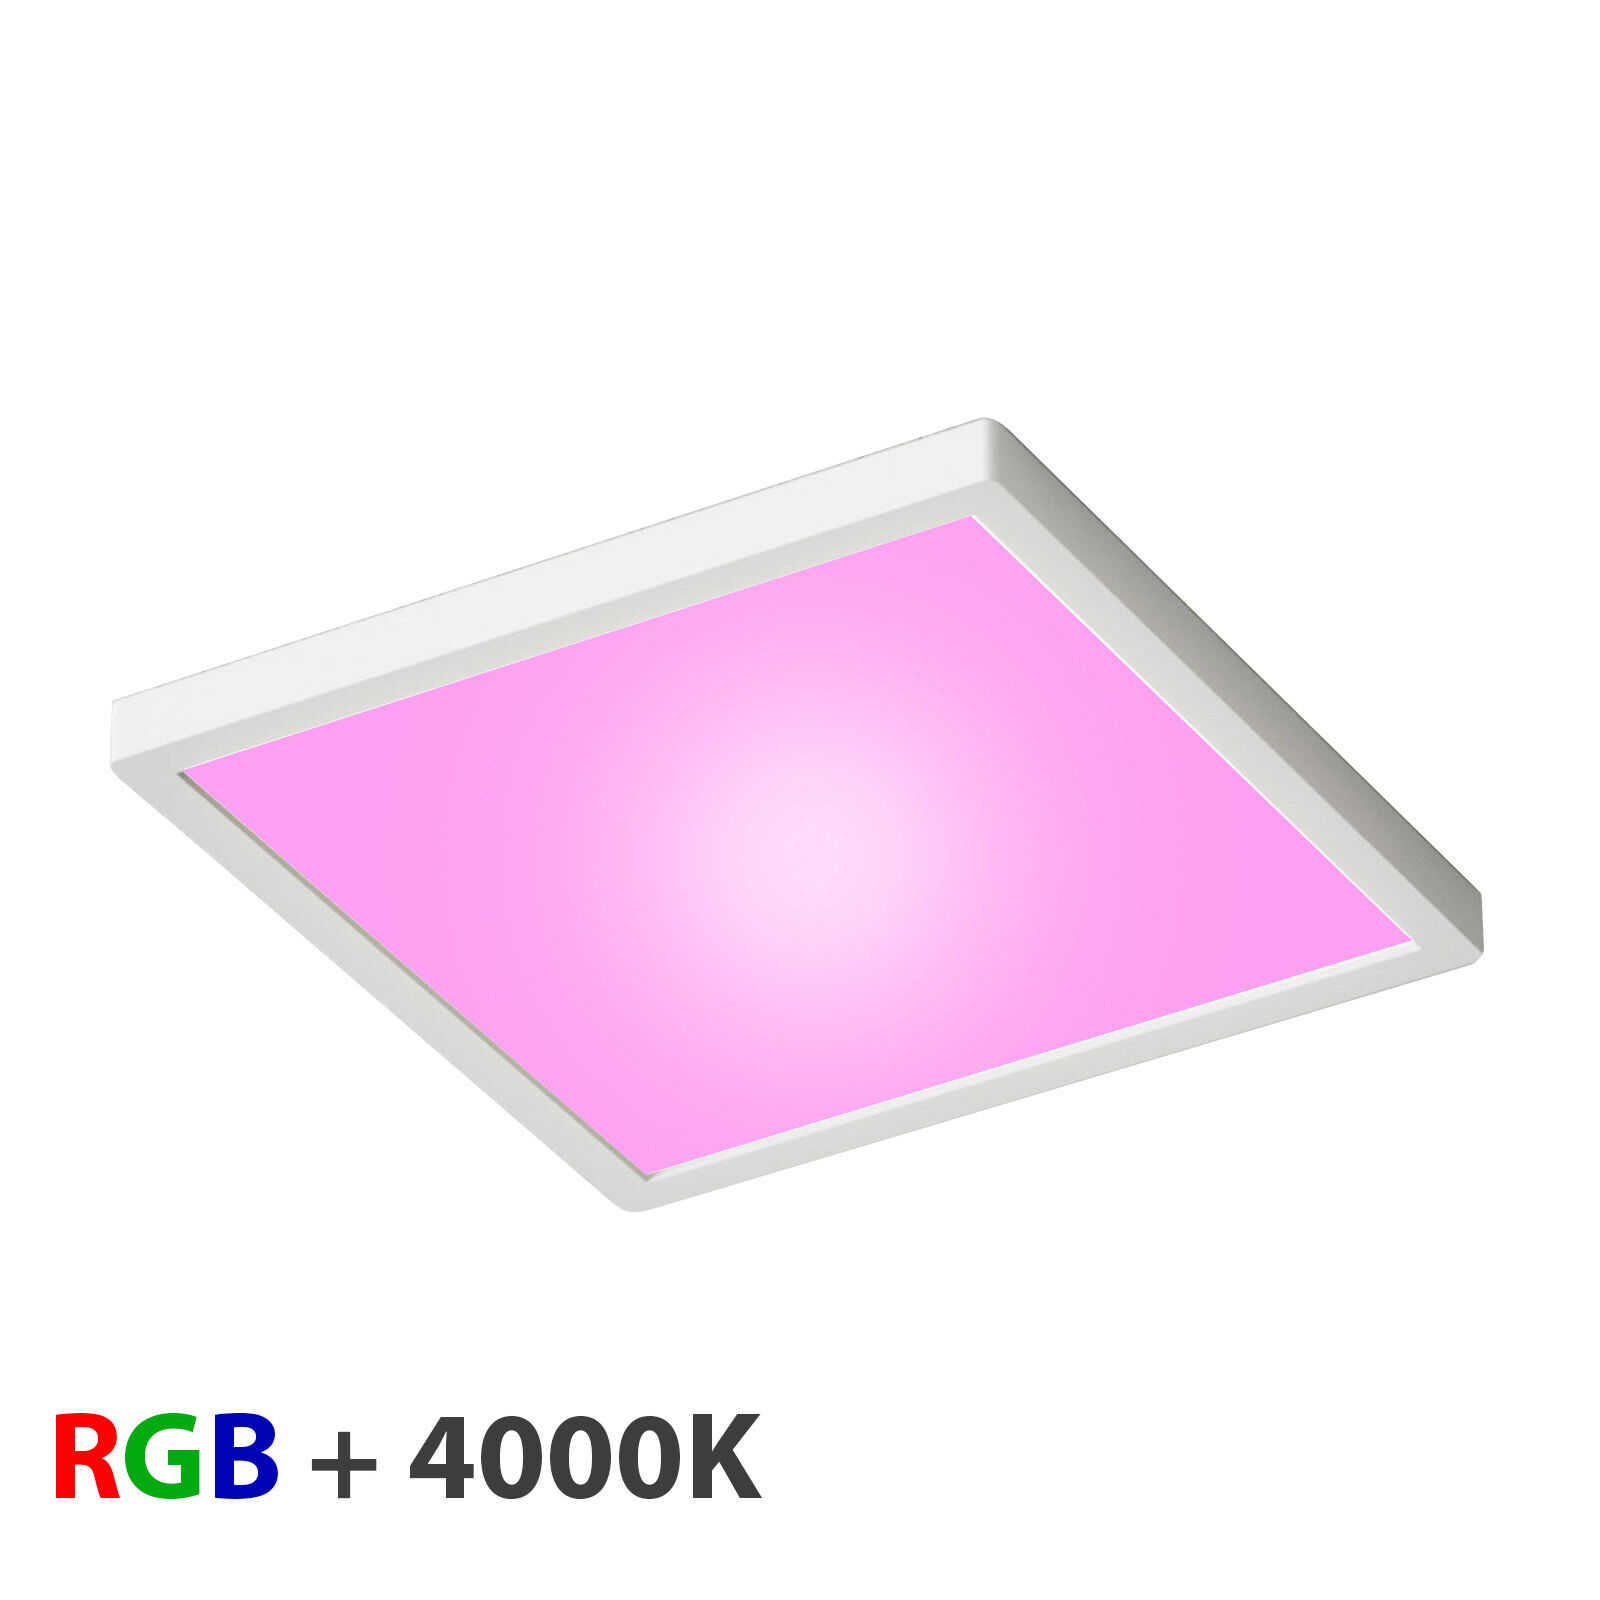 Plafoniera soffitto LED 55W luce RGB + 4000K RGBW cromoterapia dimmerabile 24V